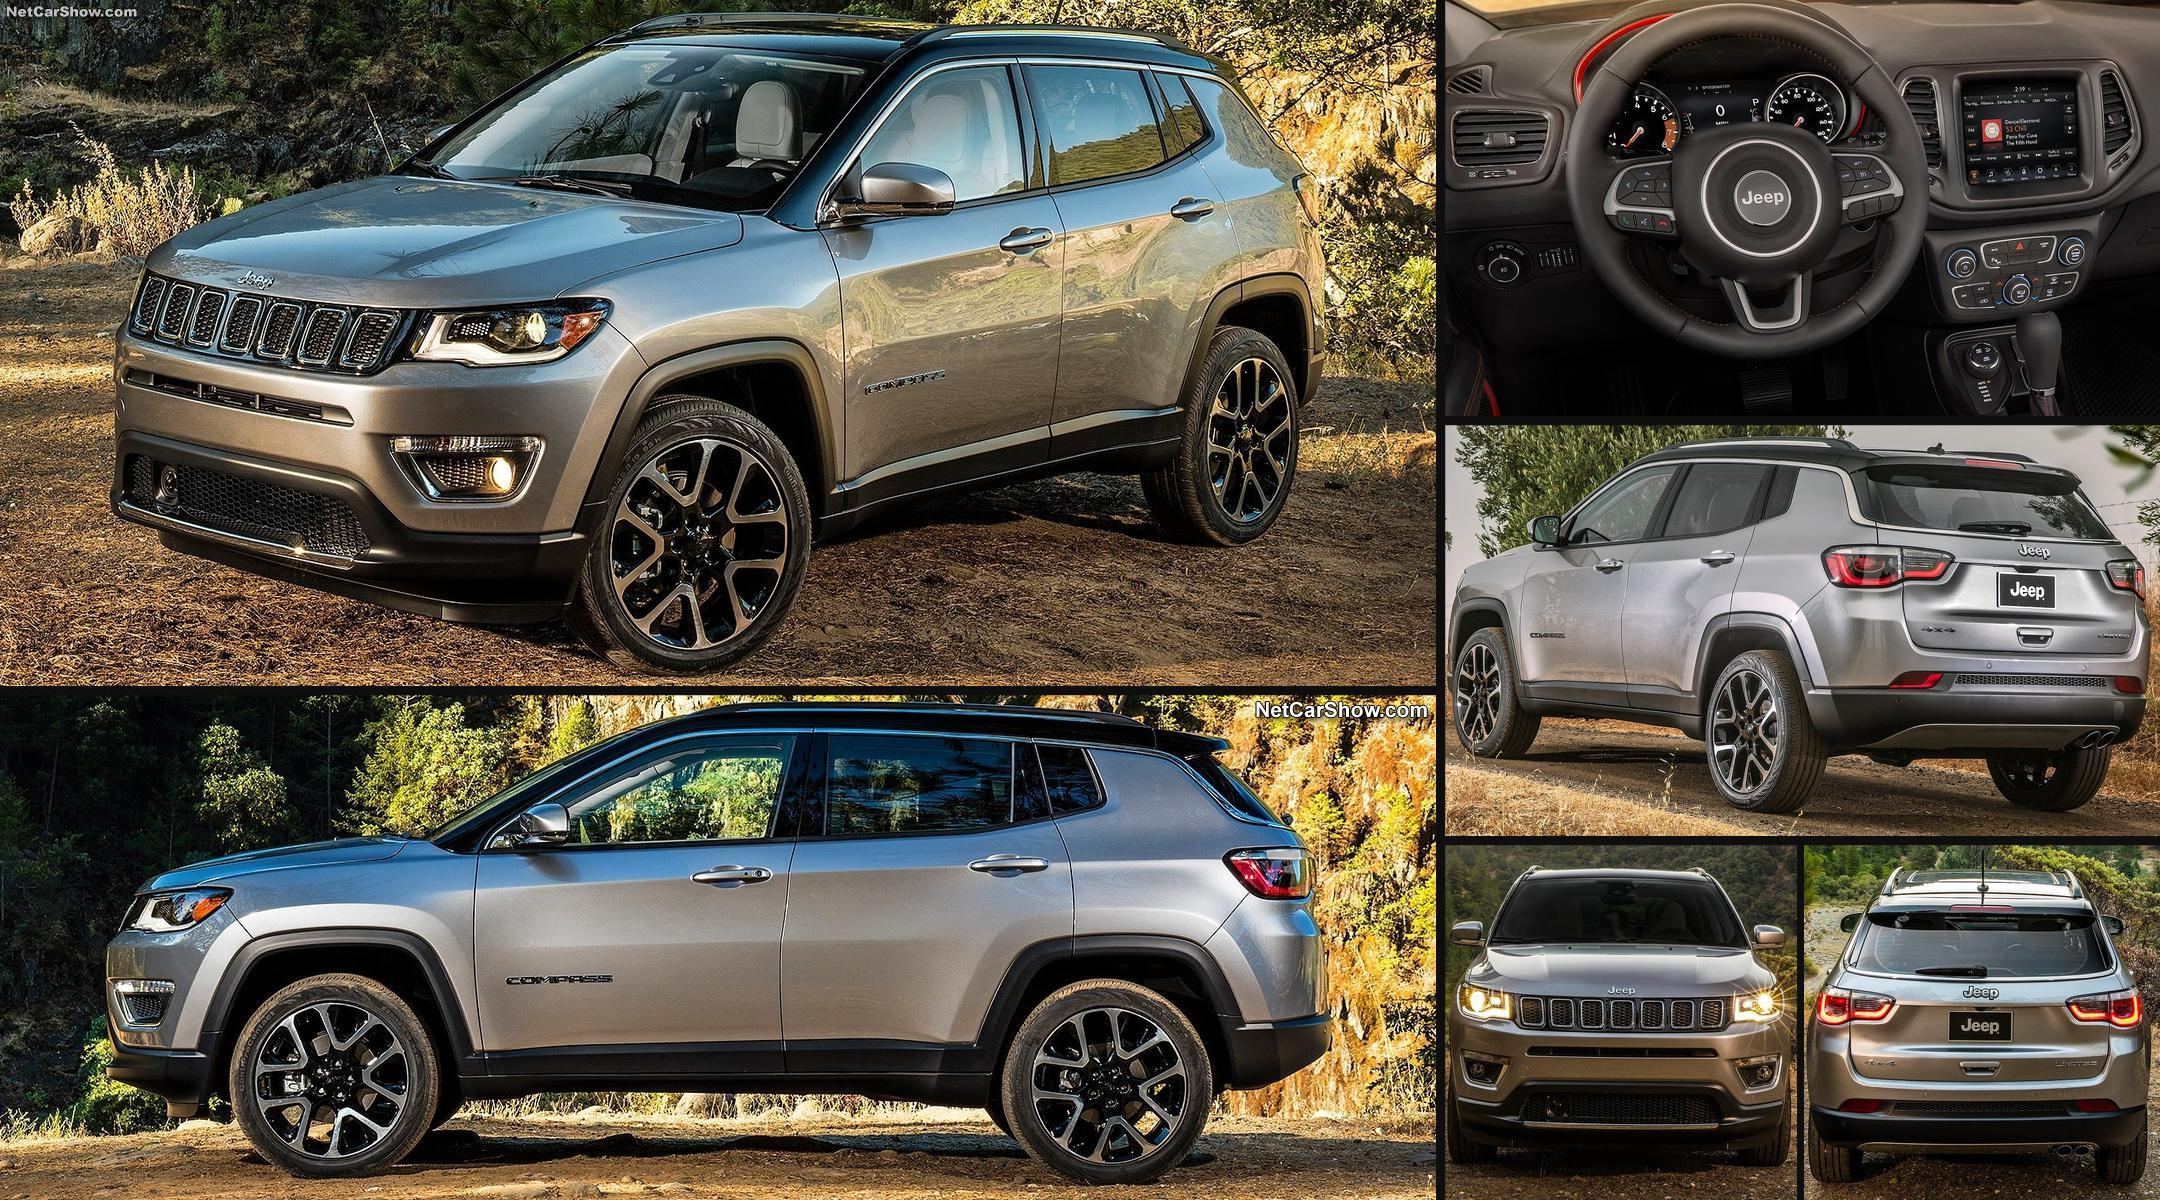 nuova jeep compass 2018 prezzi scheda tecnica dimensioni foto interni e offerte corretta. Black Bedroom Furniture Sets. Home Design Ideas